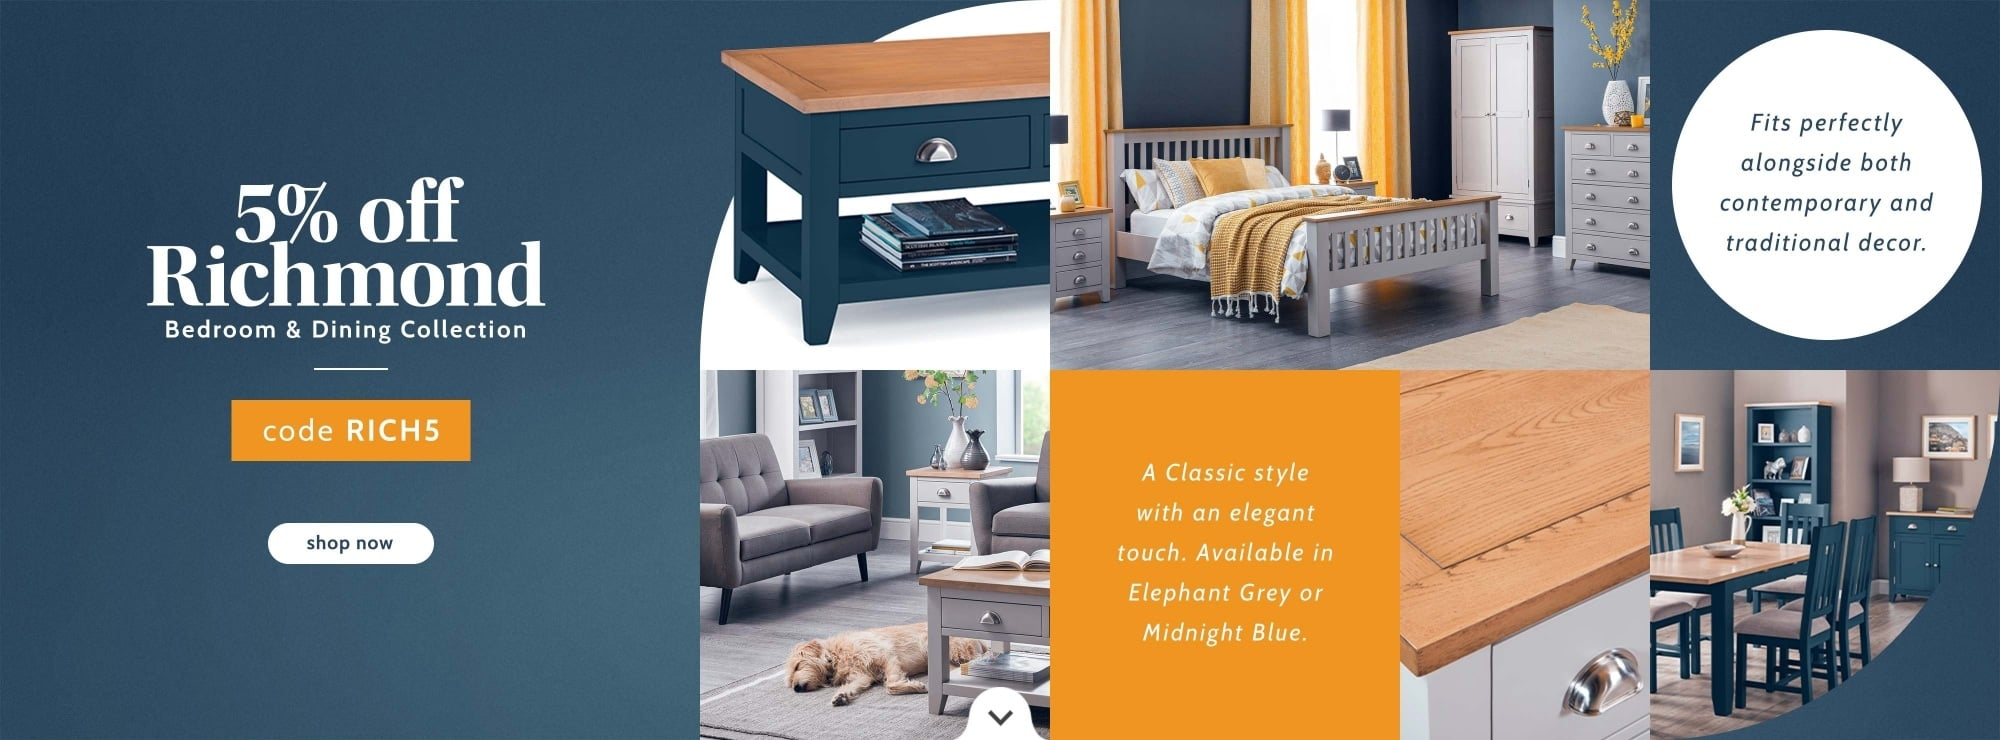 5% OFF Richmond furniture collection